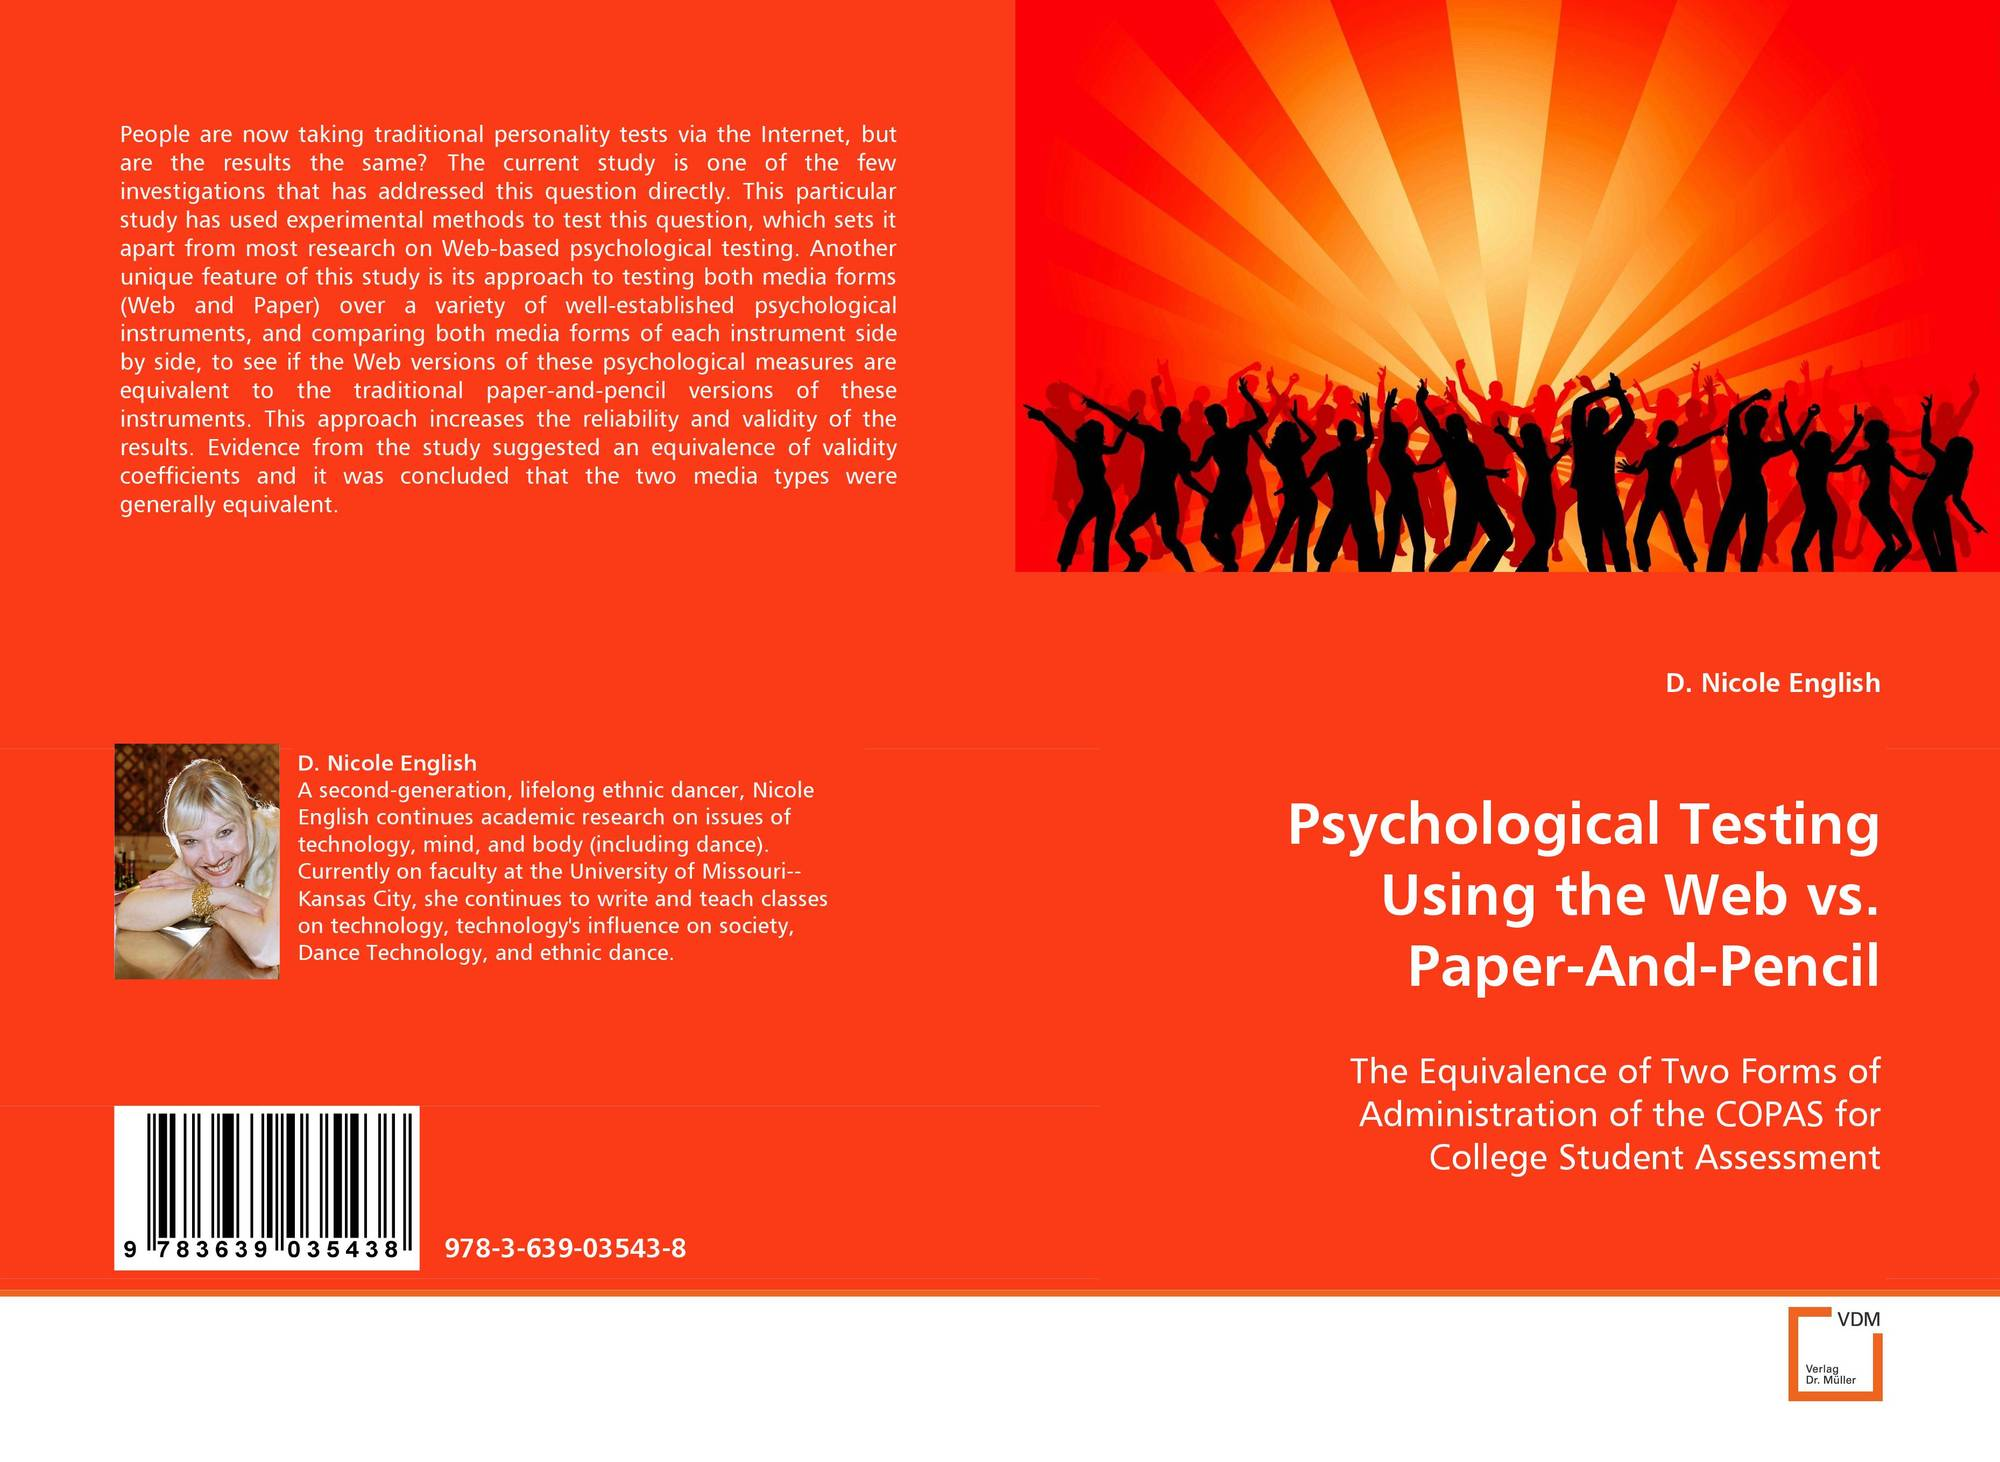 Psychological Testing Using the Web vs  Paper-And-Pencil